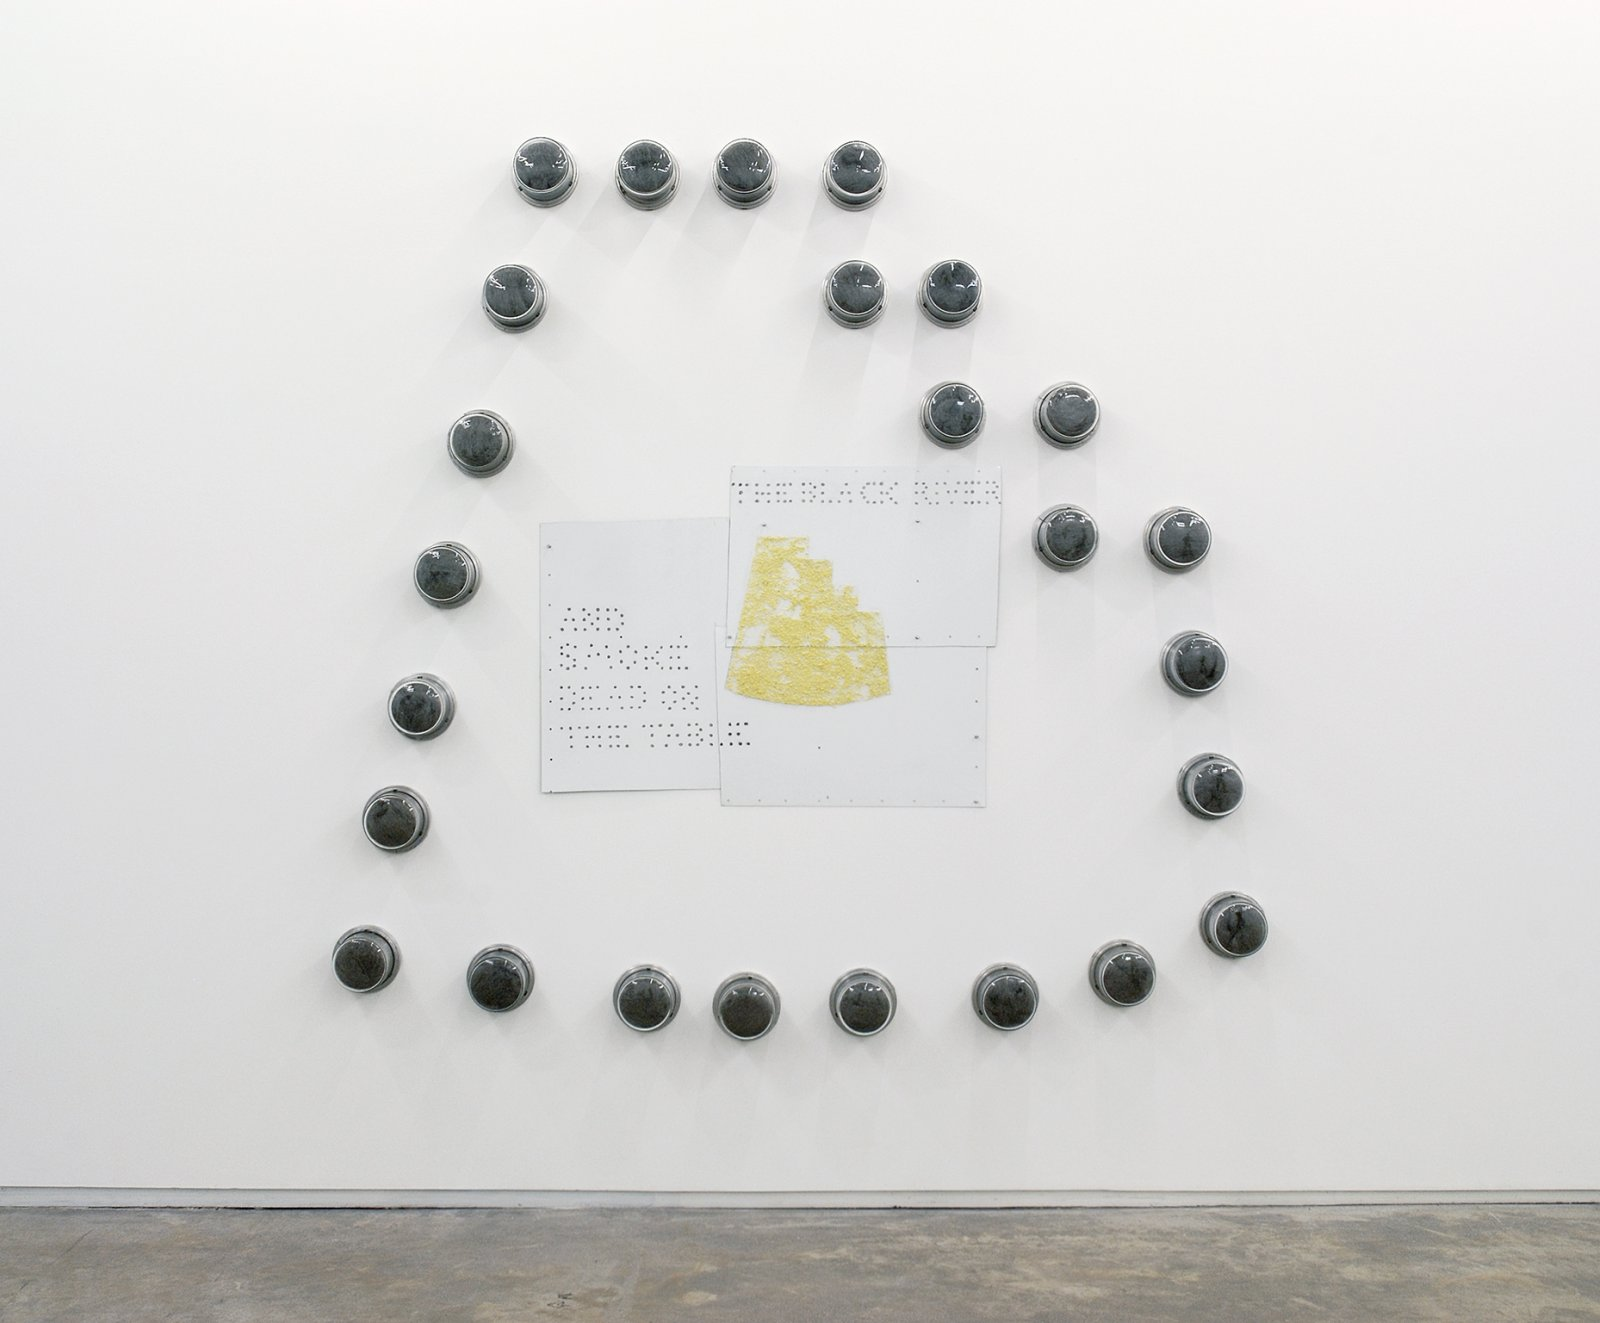 Jerry Pethick, The Last View, 1989, 22 meter covers, steel wool, aluminum, graphite, sulphur, aluminum push-pins, enamelled steel, 106 x 95 x 5 in. (270 x 240 x 12 cm)   by Jerry Pethick